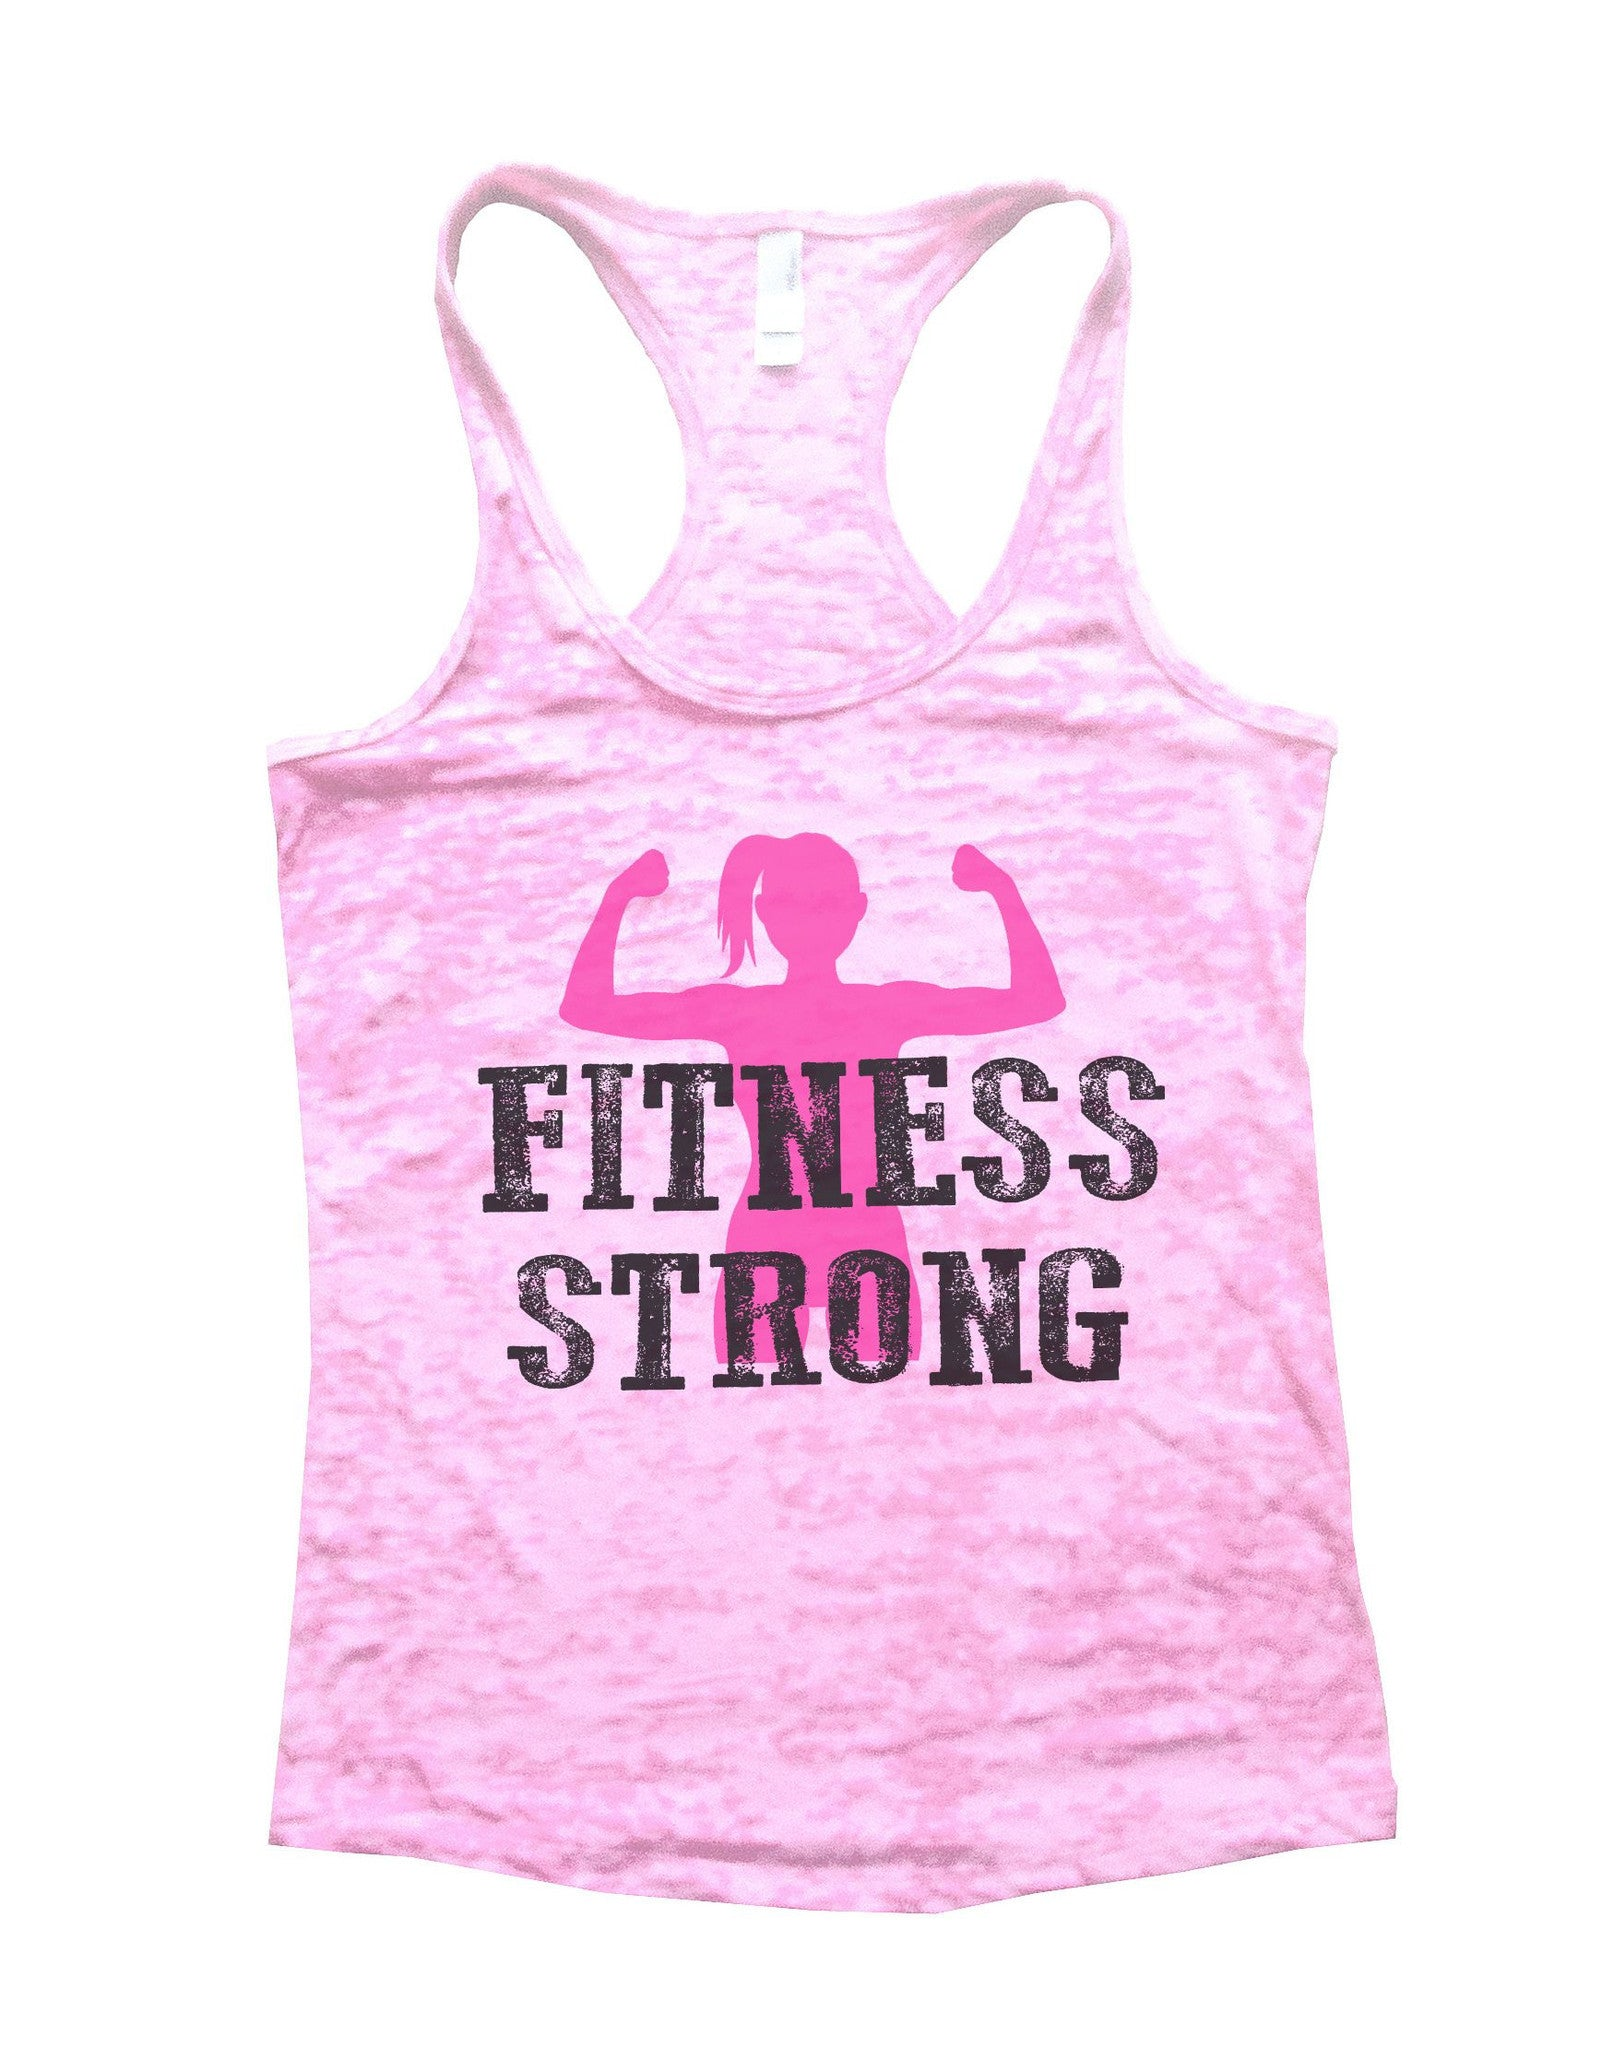 Fitness Strong Burnout Tank Top By BurnoutTankTops.com - 782 - Funny Shirts Tank Tops Burnouts and Triblends  - 1